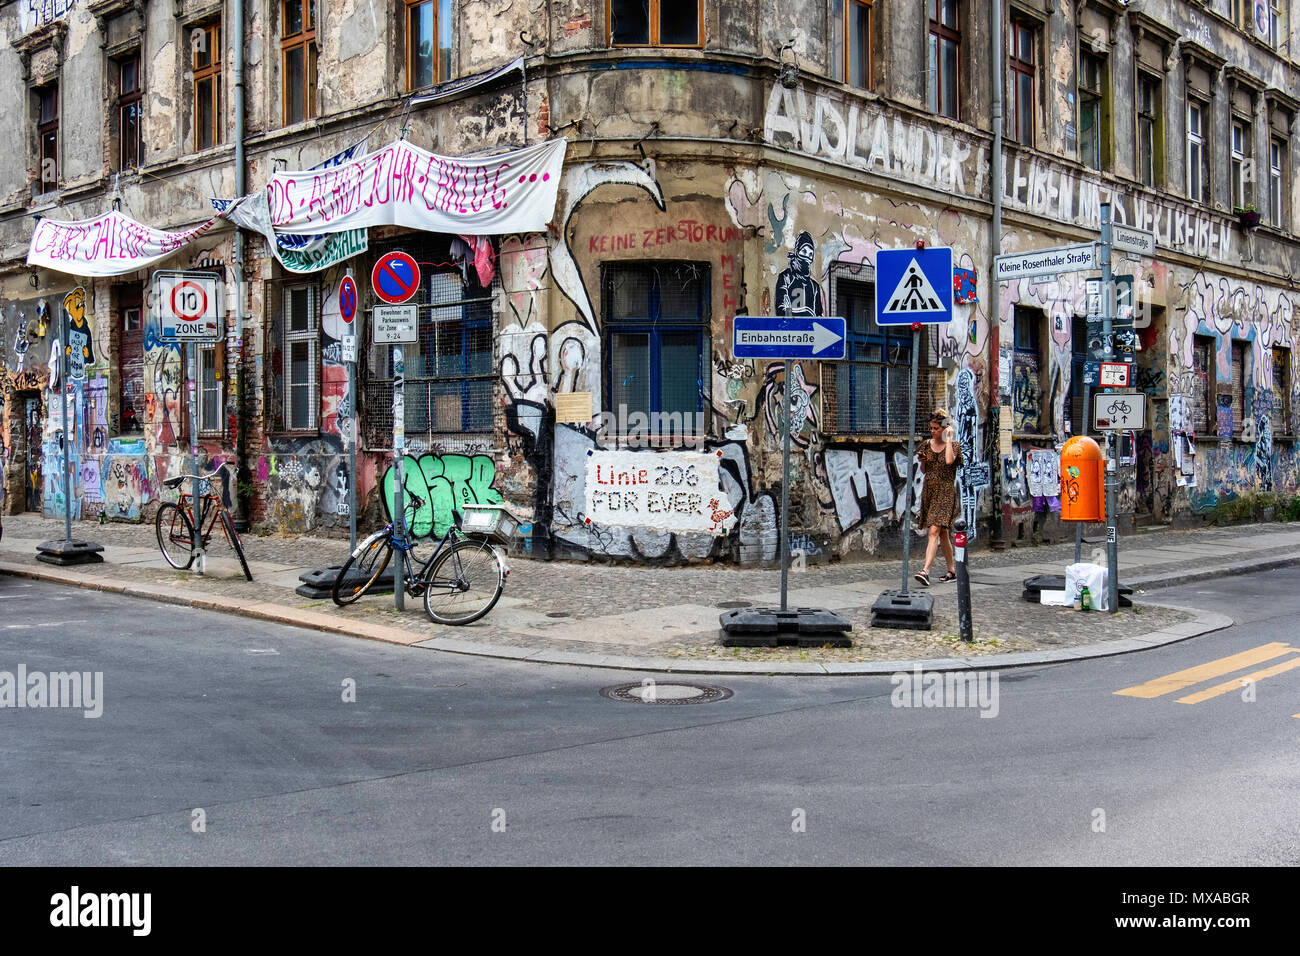 Berlin Mitte, Linienstrasse 206. Dilapidated Sqaut building covered in graffiti,street art and banners. Linie 206 for ever. - Stock Image